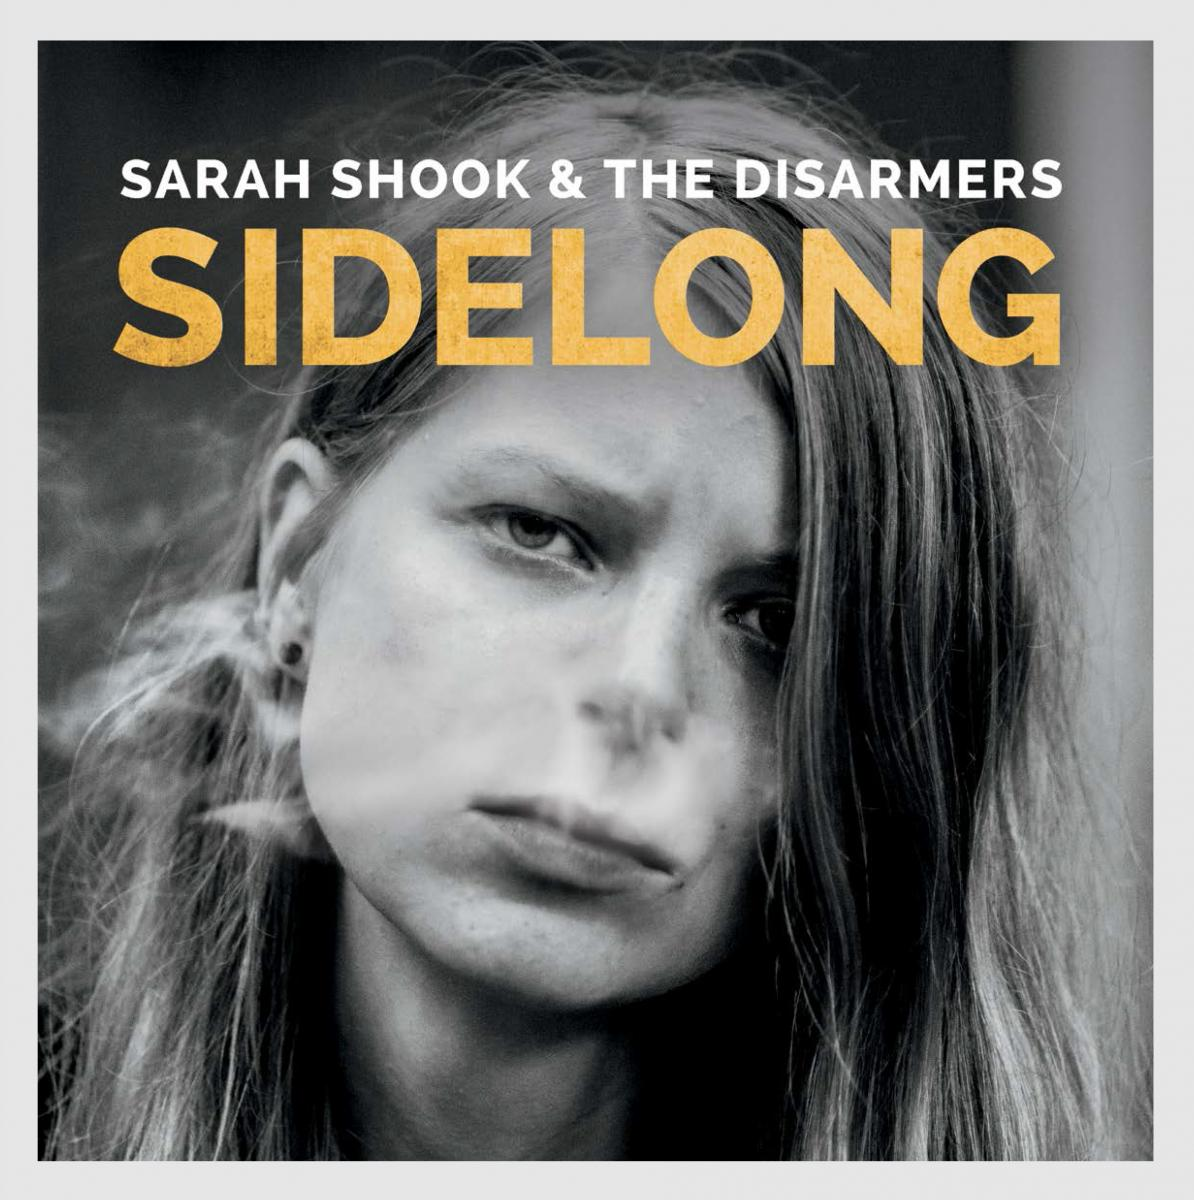 Sarah Shook and the Disarmers Sidelong Album Art